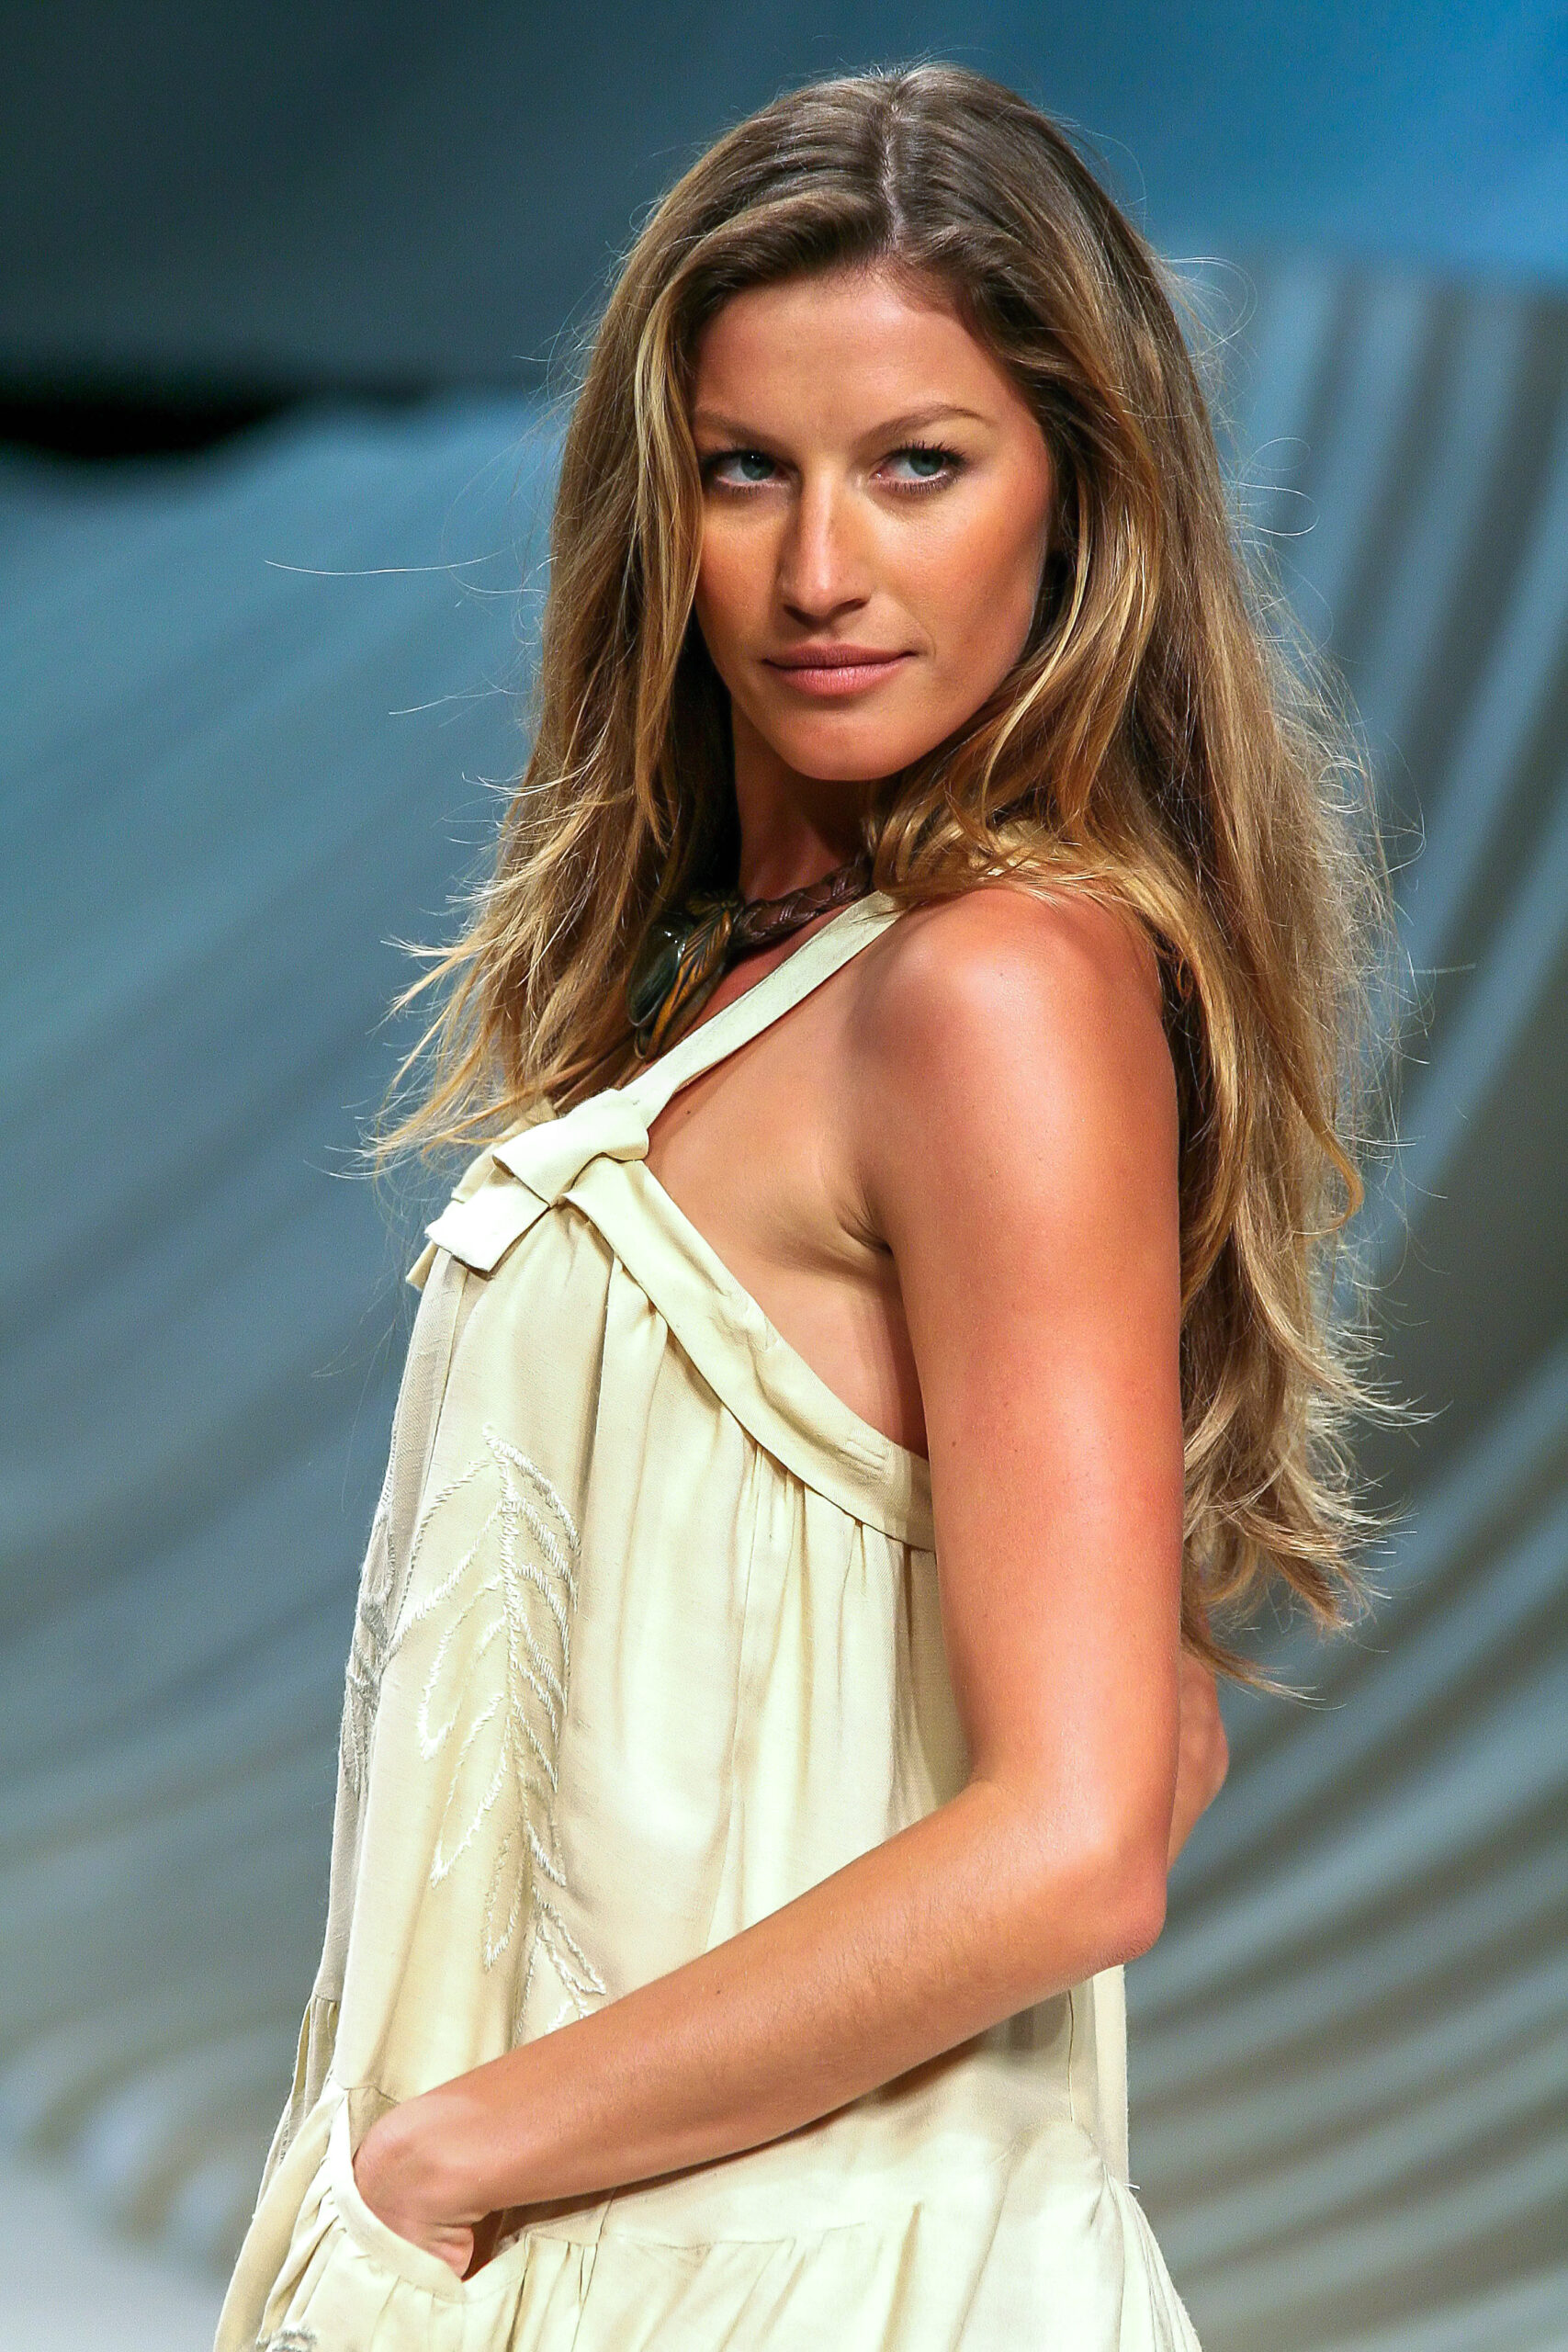 Top 10 Richest Female Models In The World.